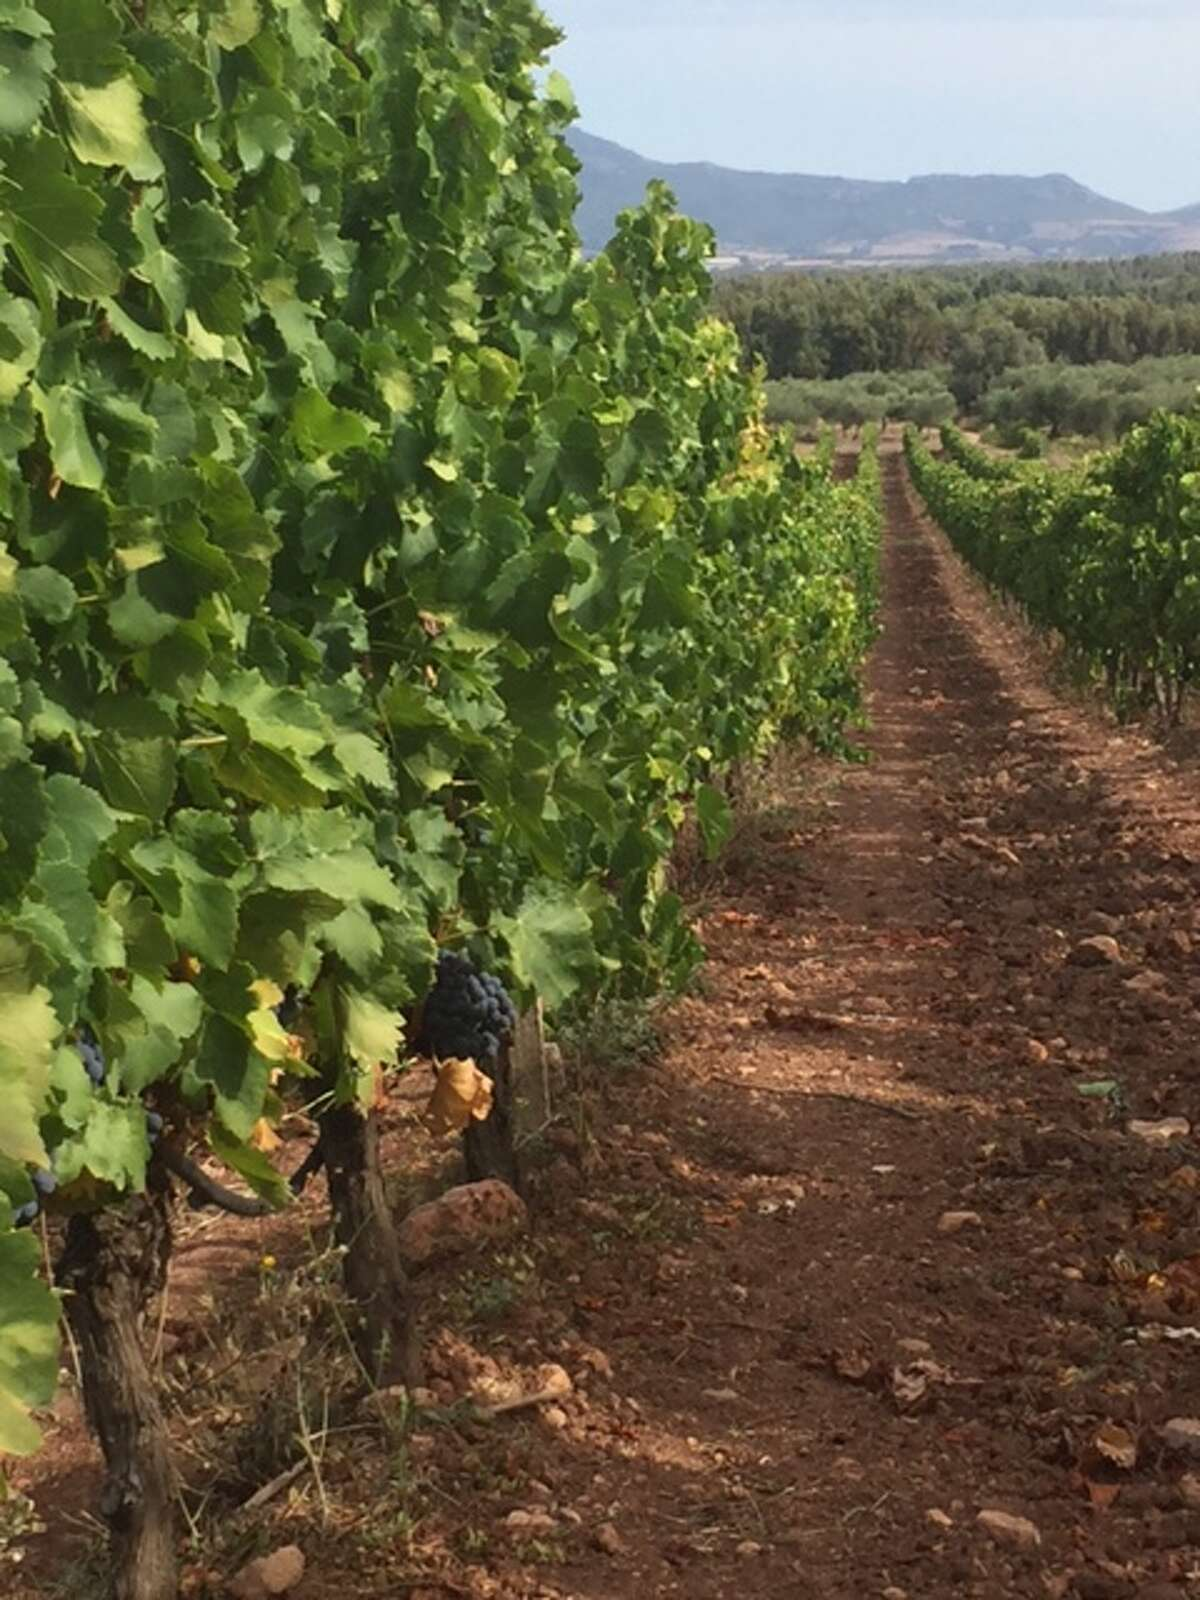 Troy importer Tony O'Haire visited vineyards when he traveled to Sardinia in September.